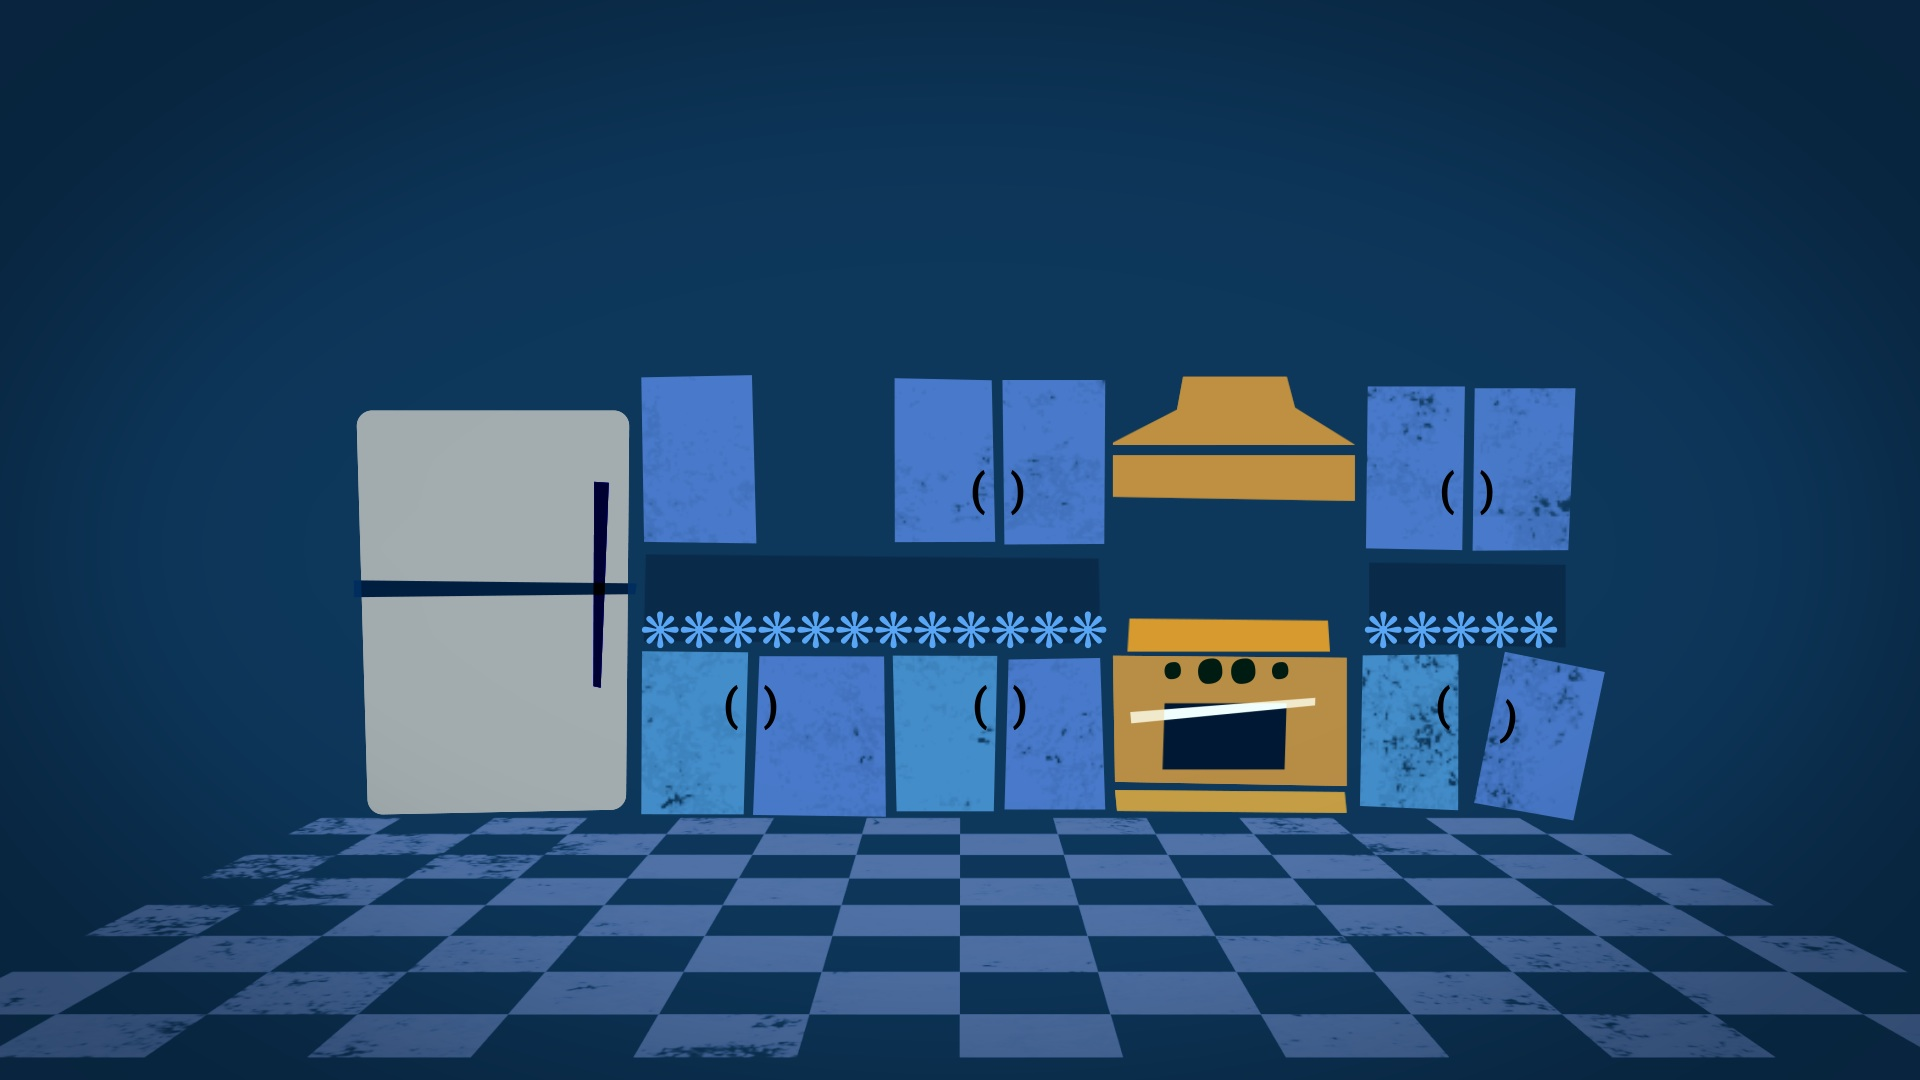 Fix This Kitchen titles by Los Angeles motion graphic design company jonberrydesign